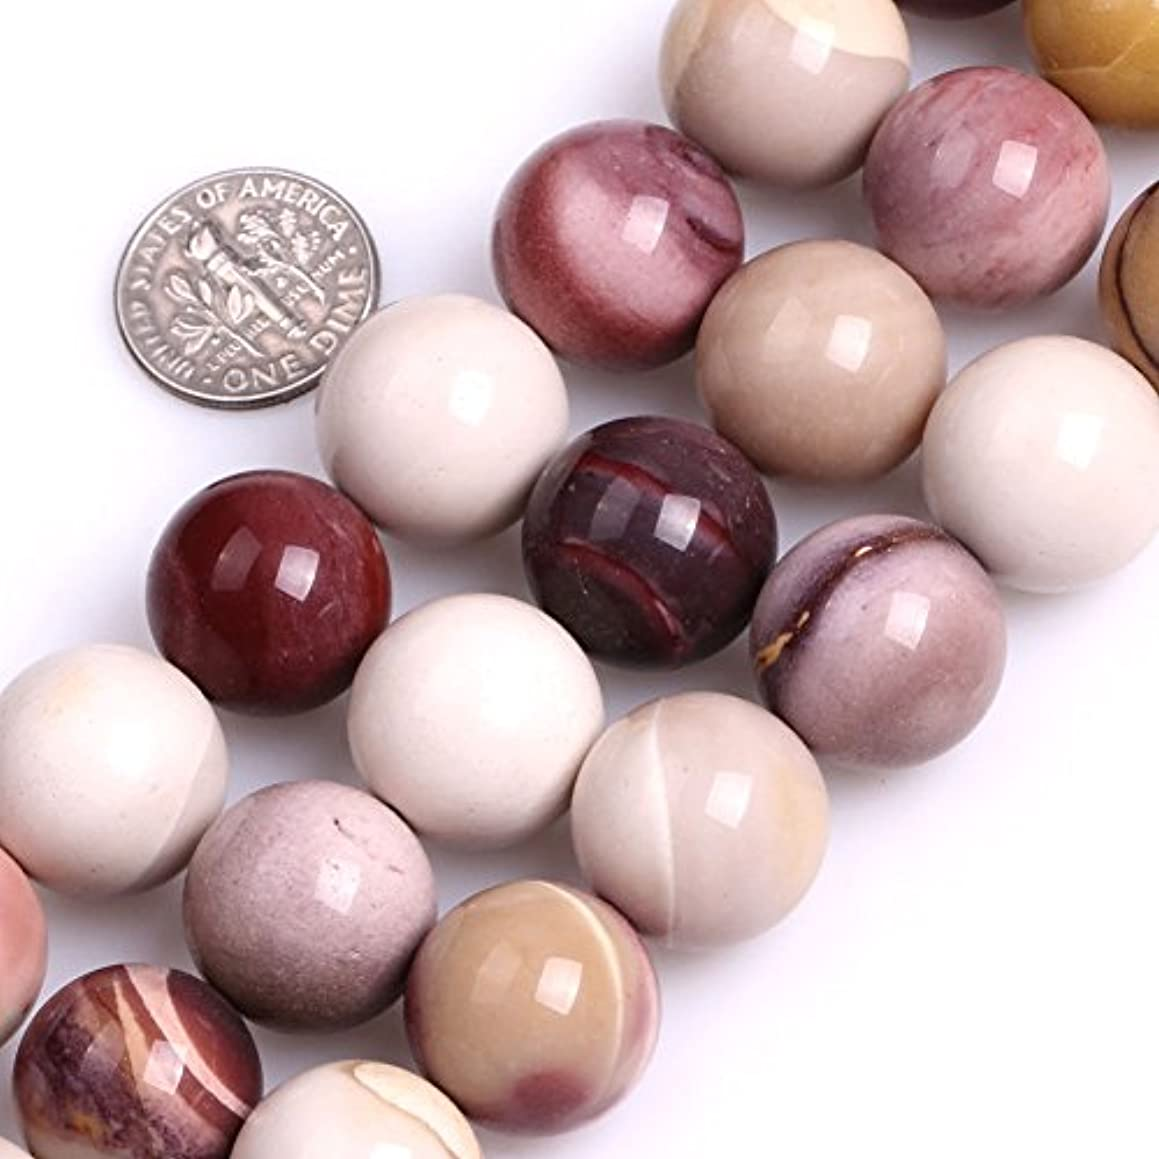 GEM-inside 16mm Round Smooth Twist Mookaite Jasper Beads For Jewelry Making Loose Beads 15